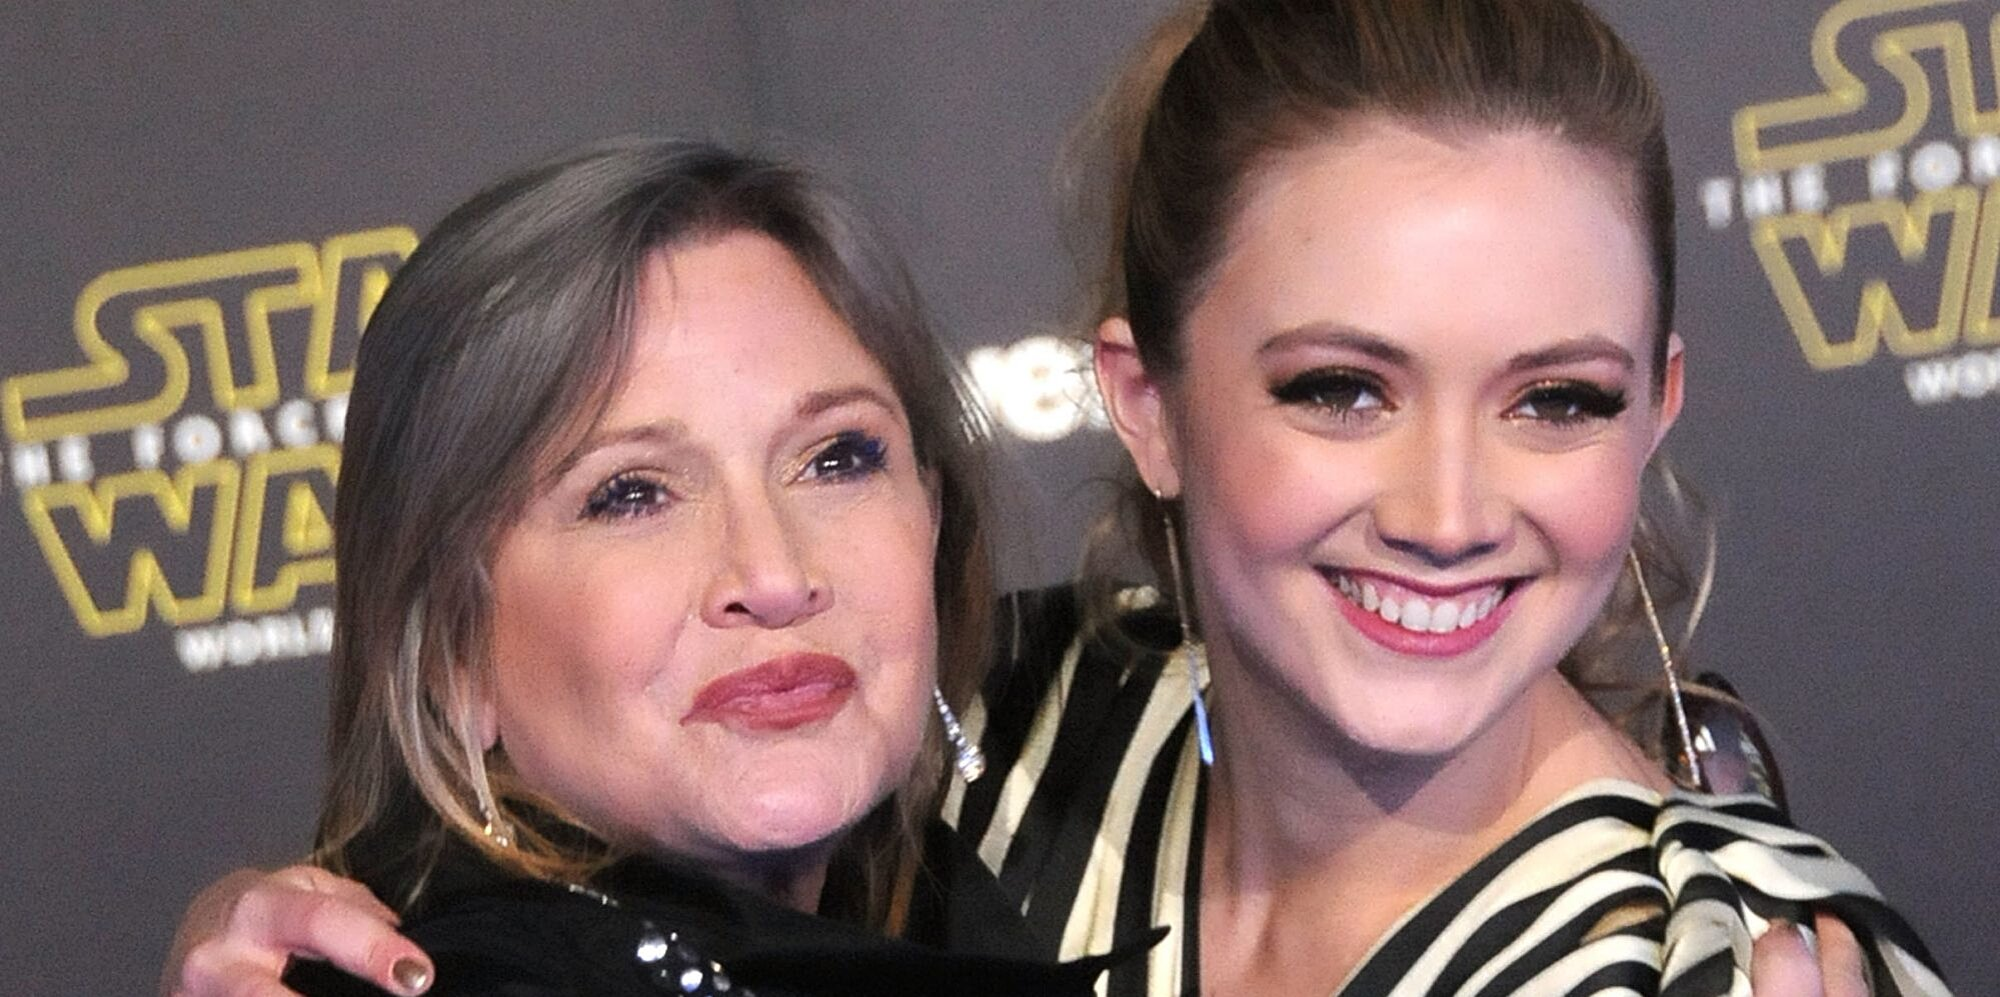 Billie Lourd's Son Dressed as Carrie Fisher to Watch 'Star Wars' Is Making Us Emotional